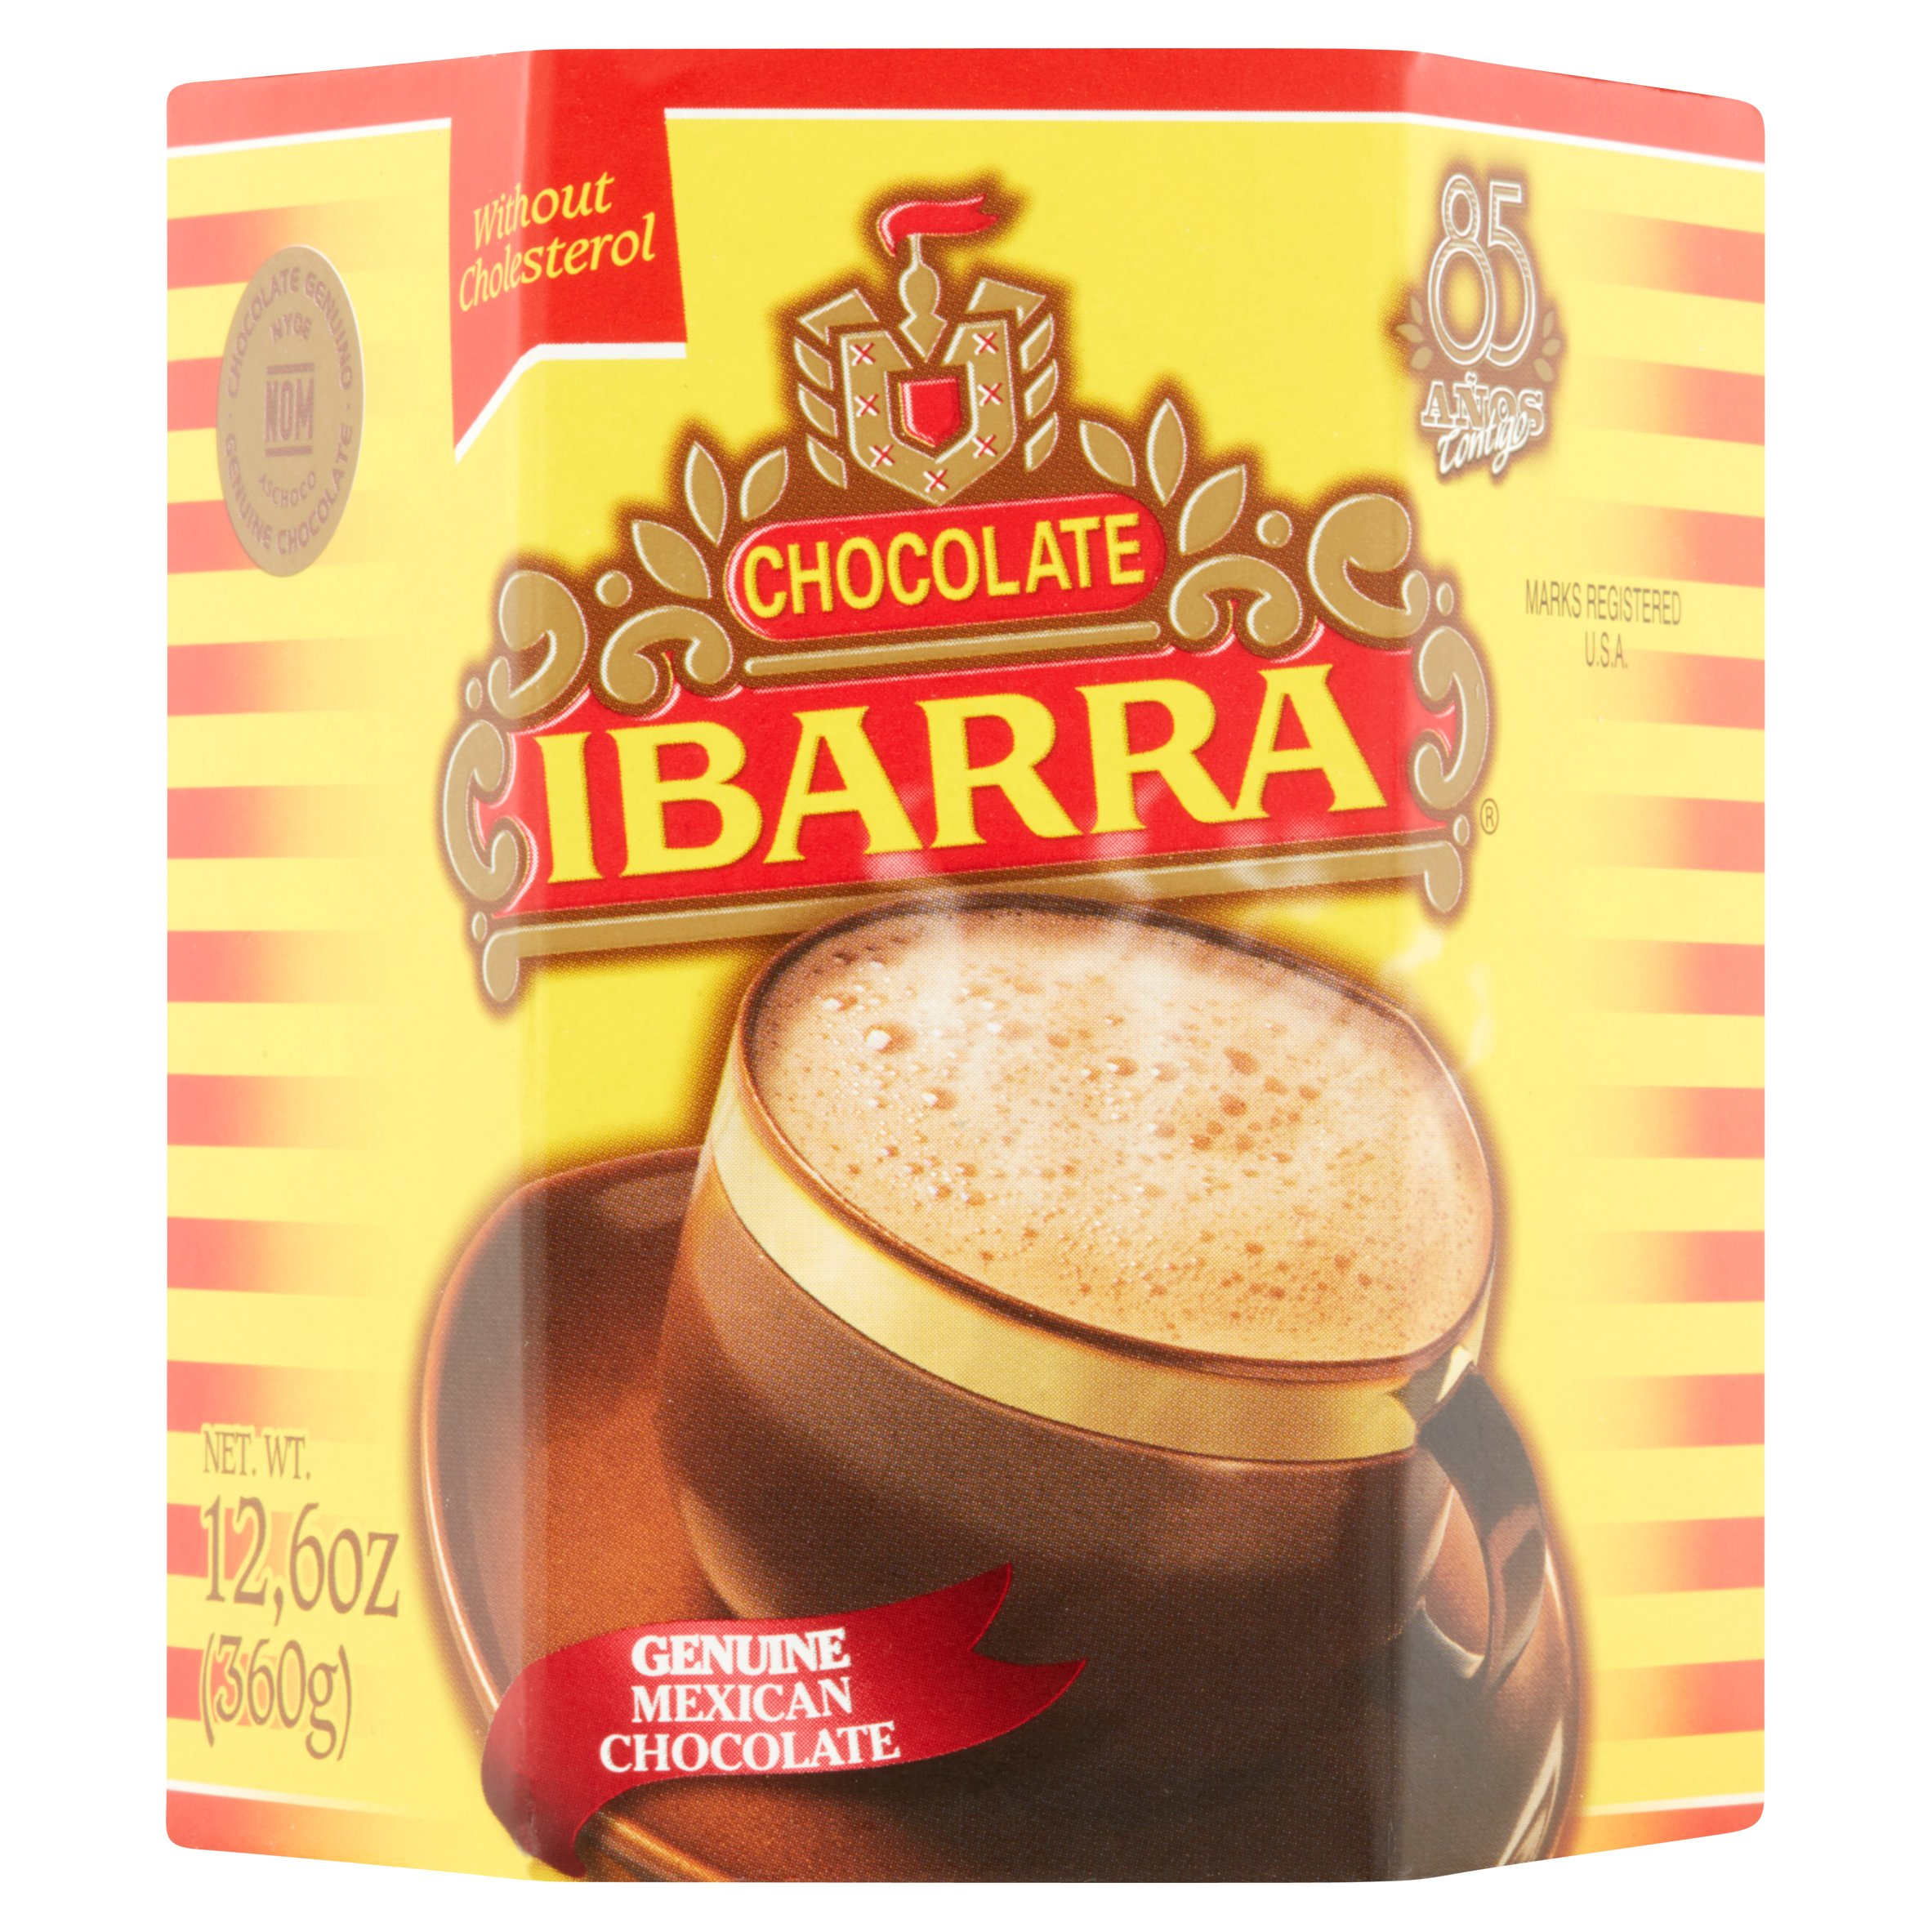 Ibarra Genuine Mexican Chocolate, 12.6 oz